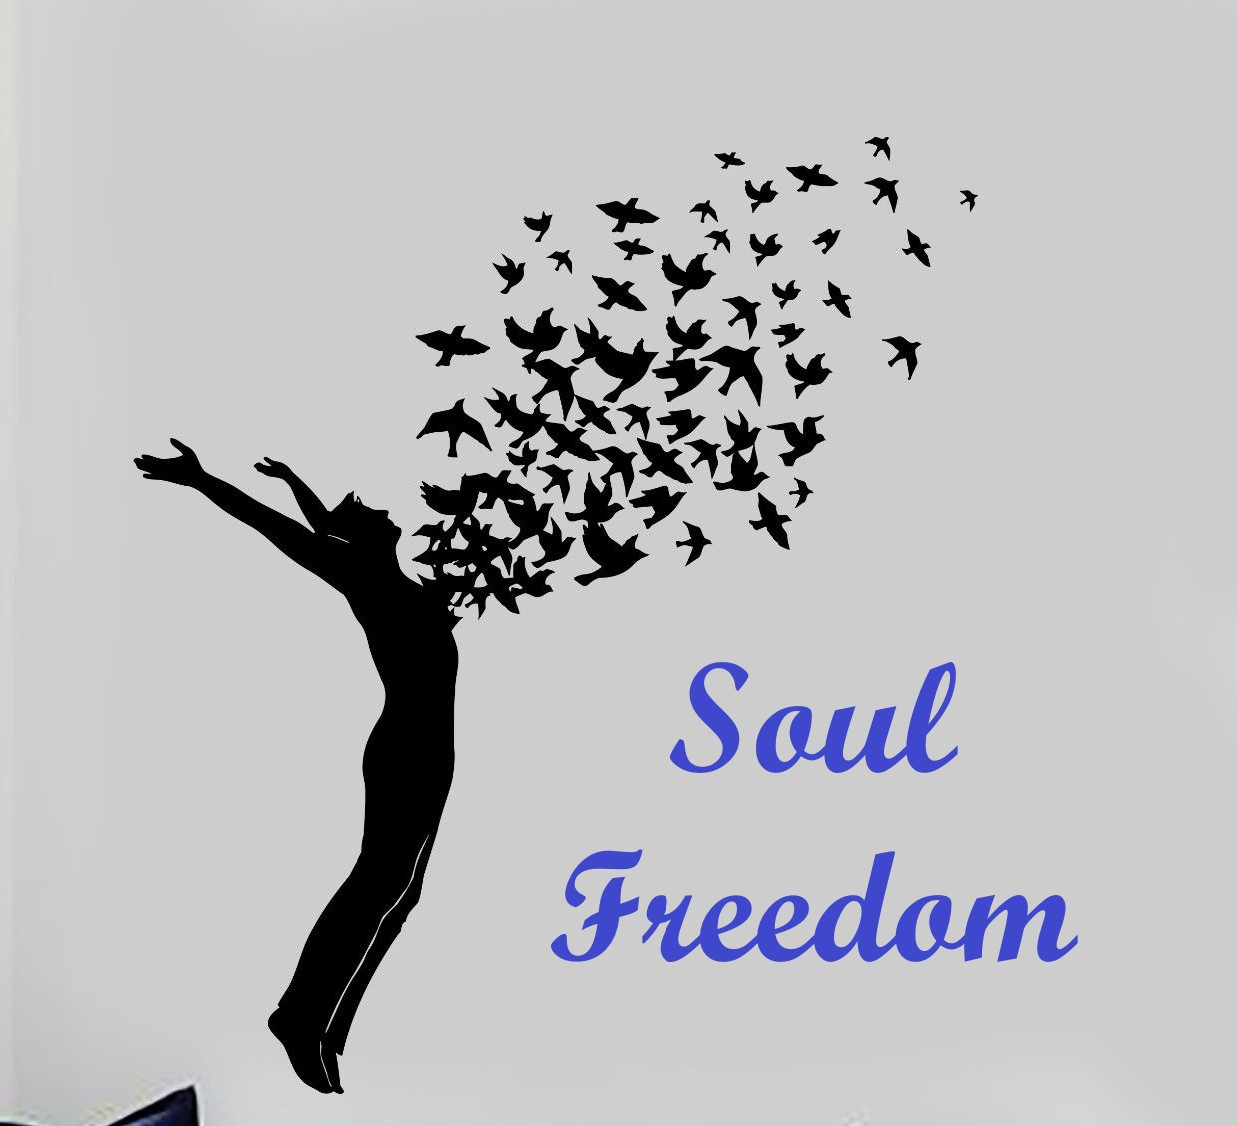 Soul Freedom Brings Union